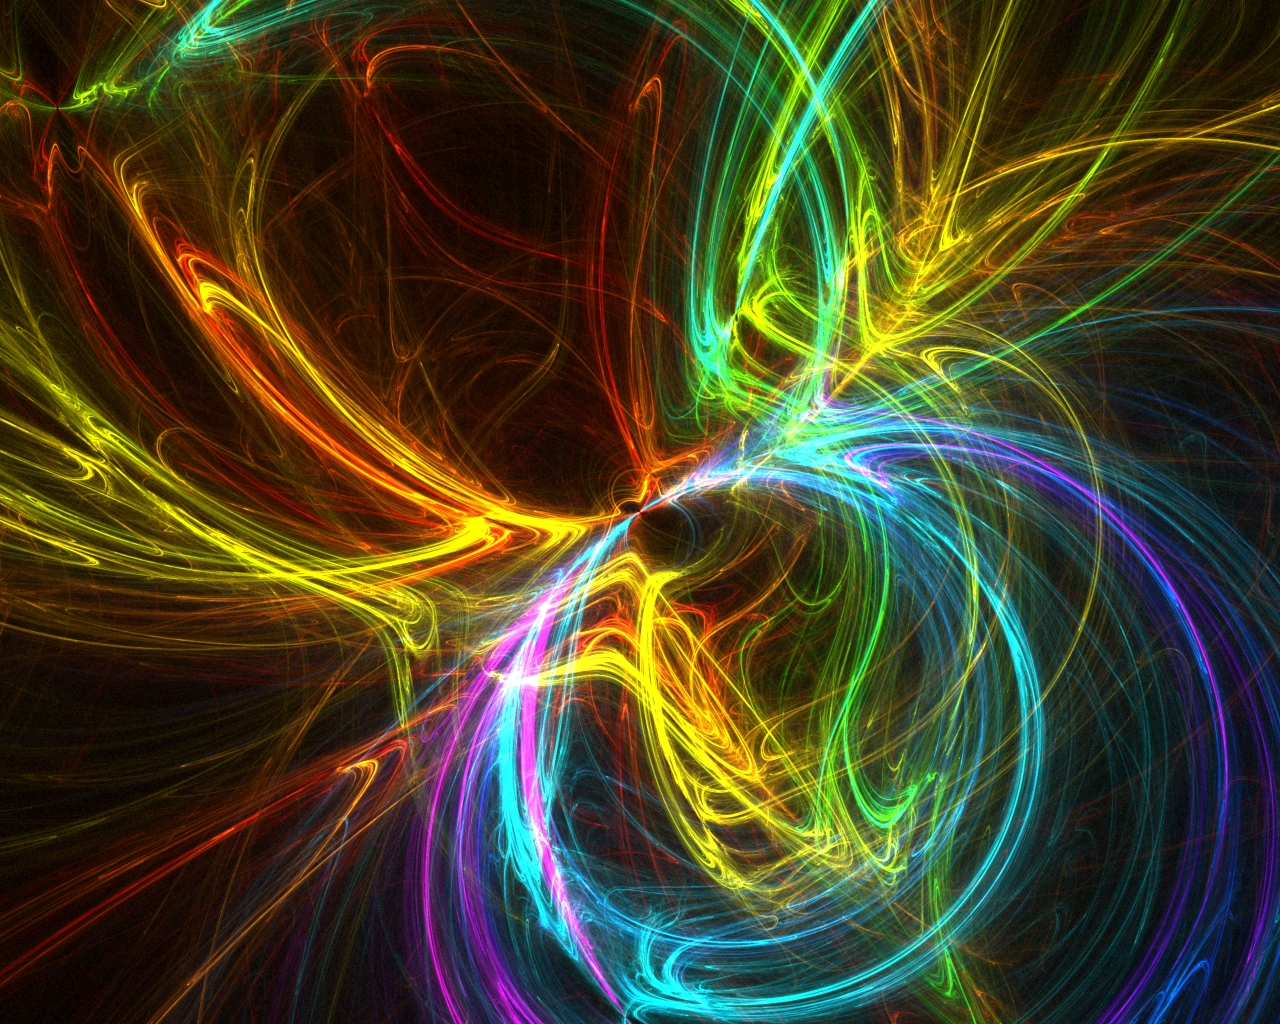 Hd wallpapers abstract hd wallpapers - Colorful background hd ...